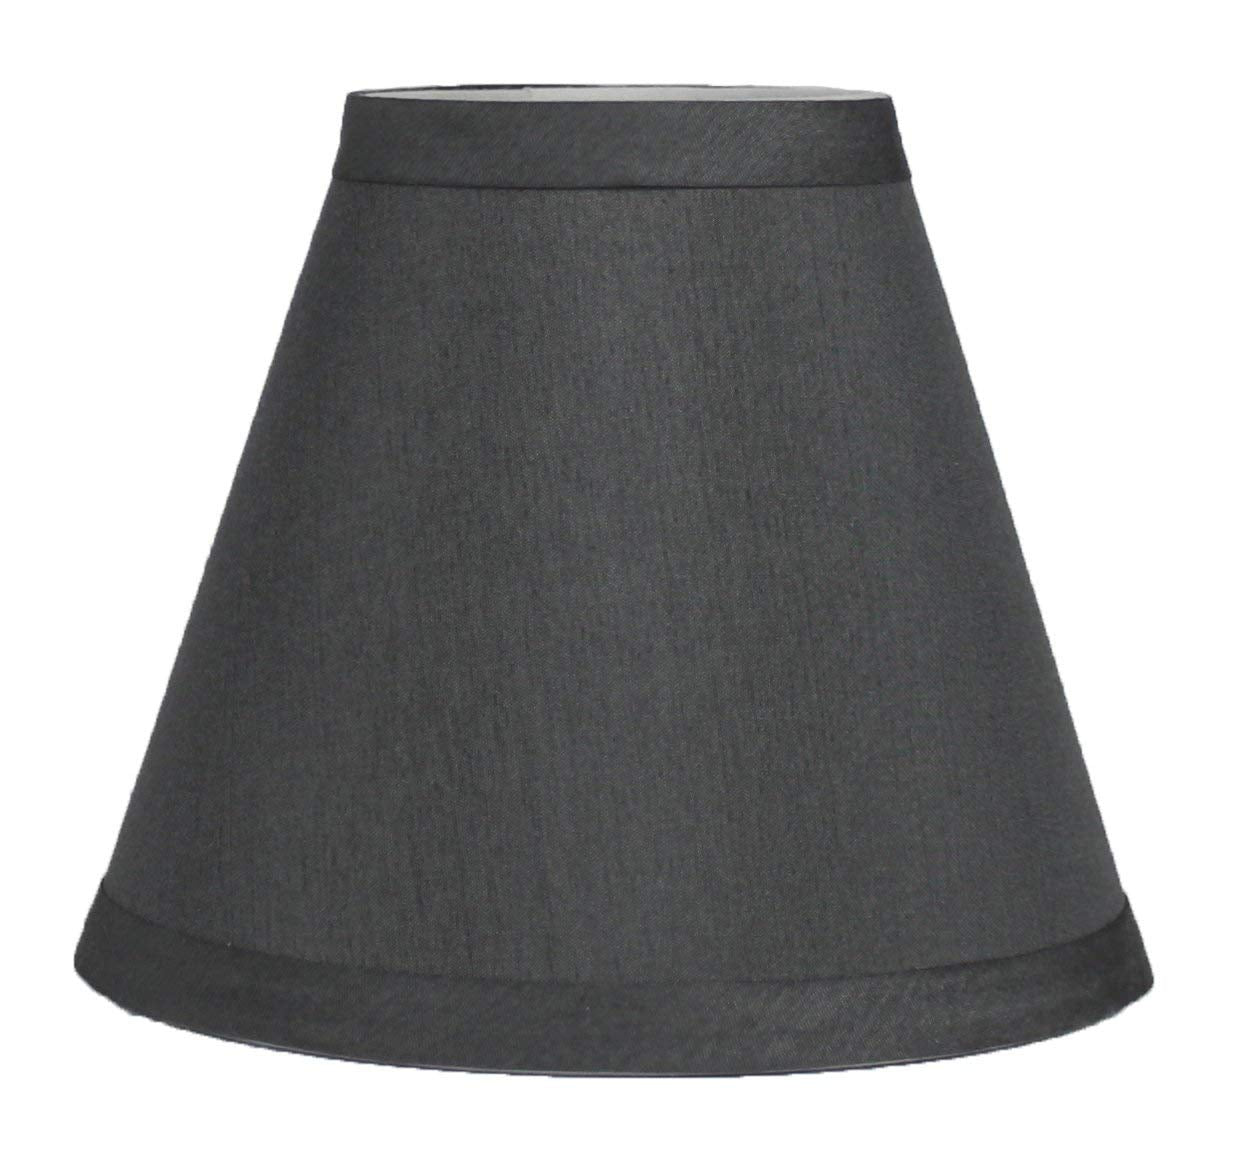 Urbanest Hardback Chandelier Lamp Shade, Clip-on